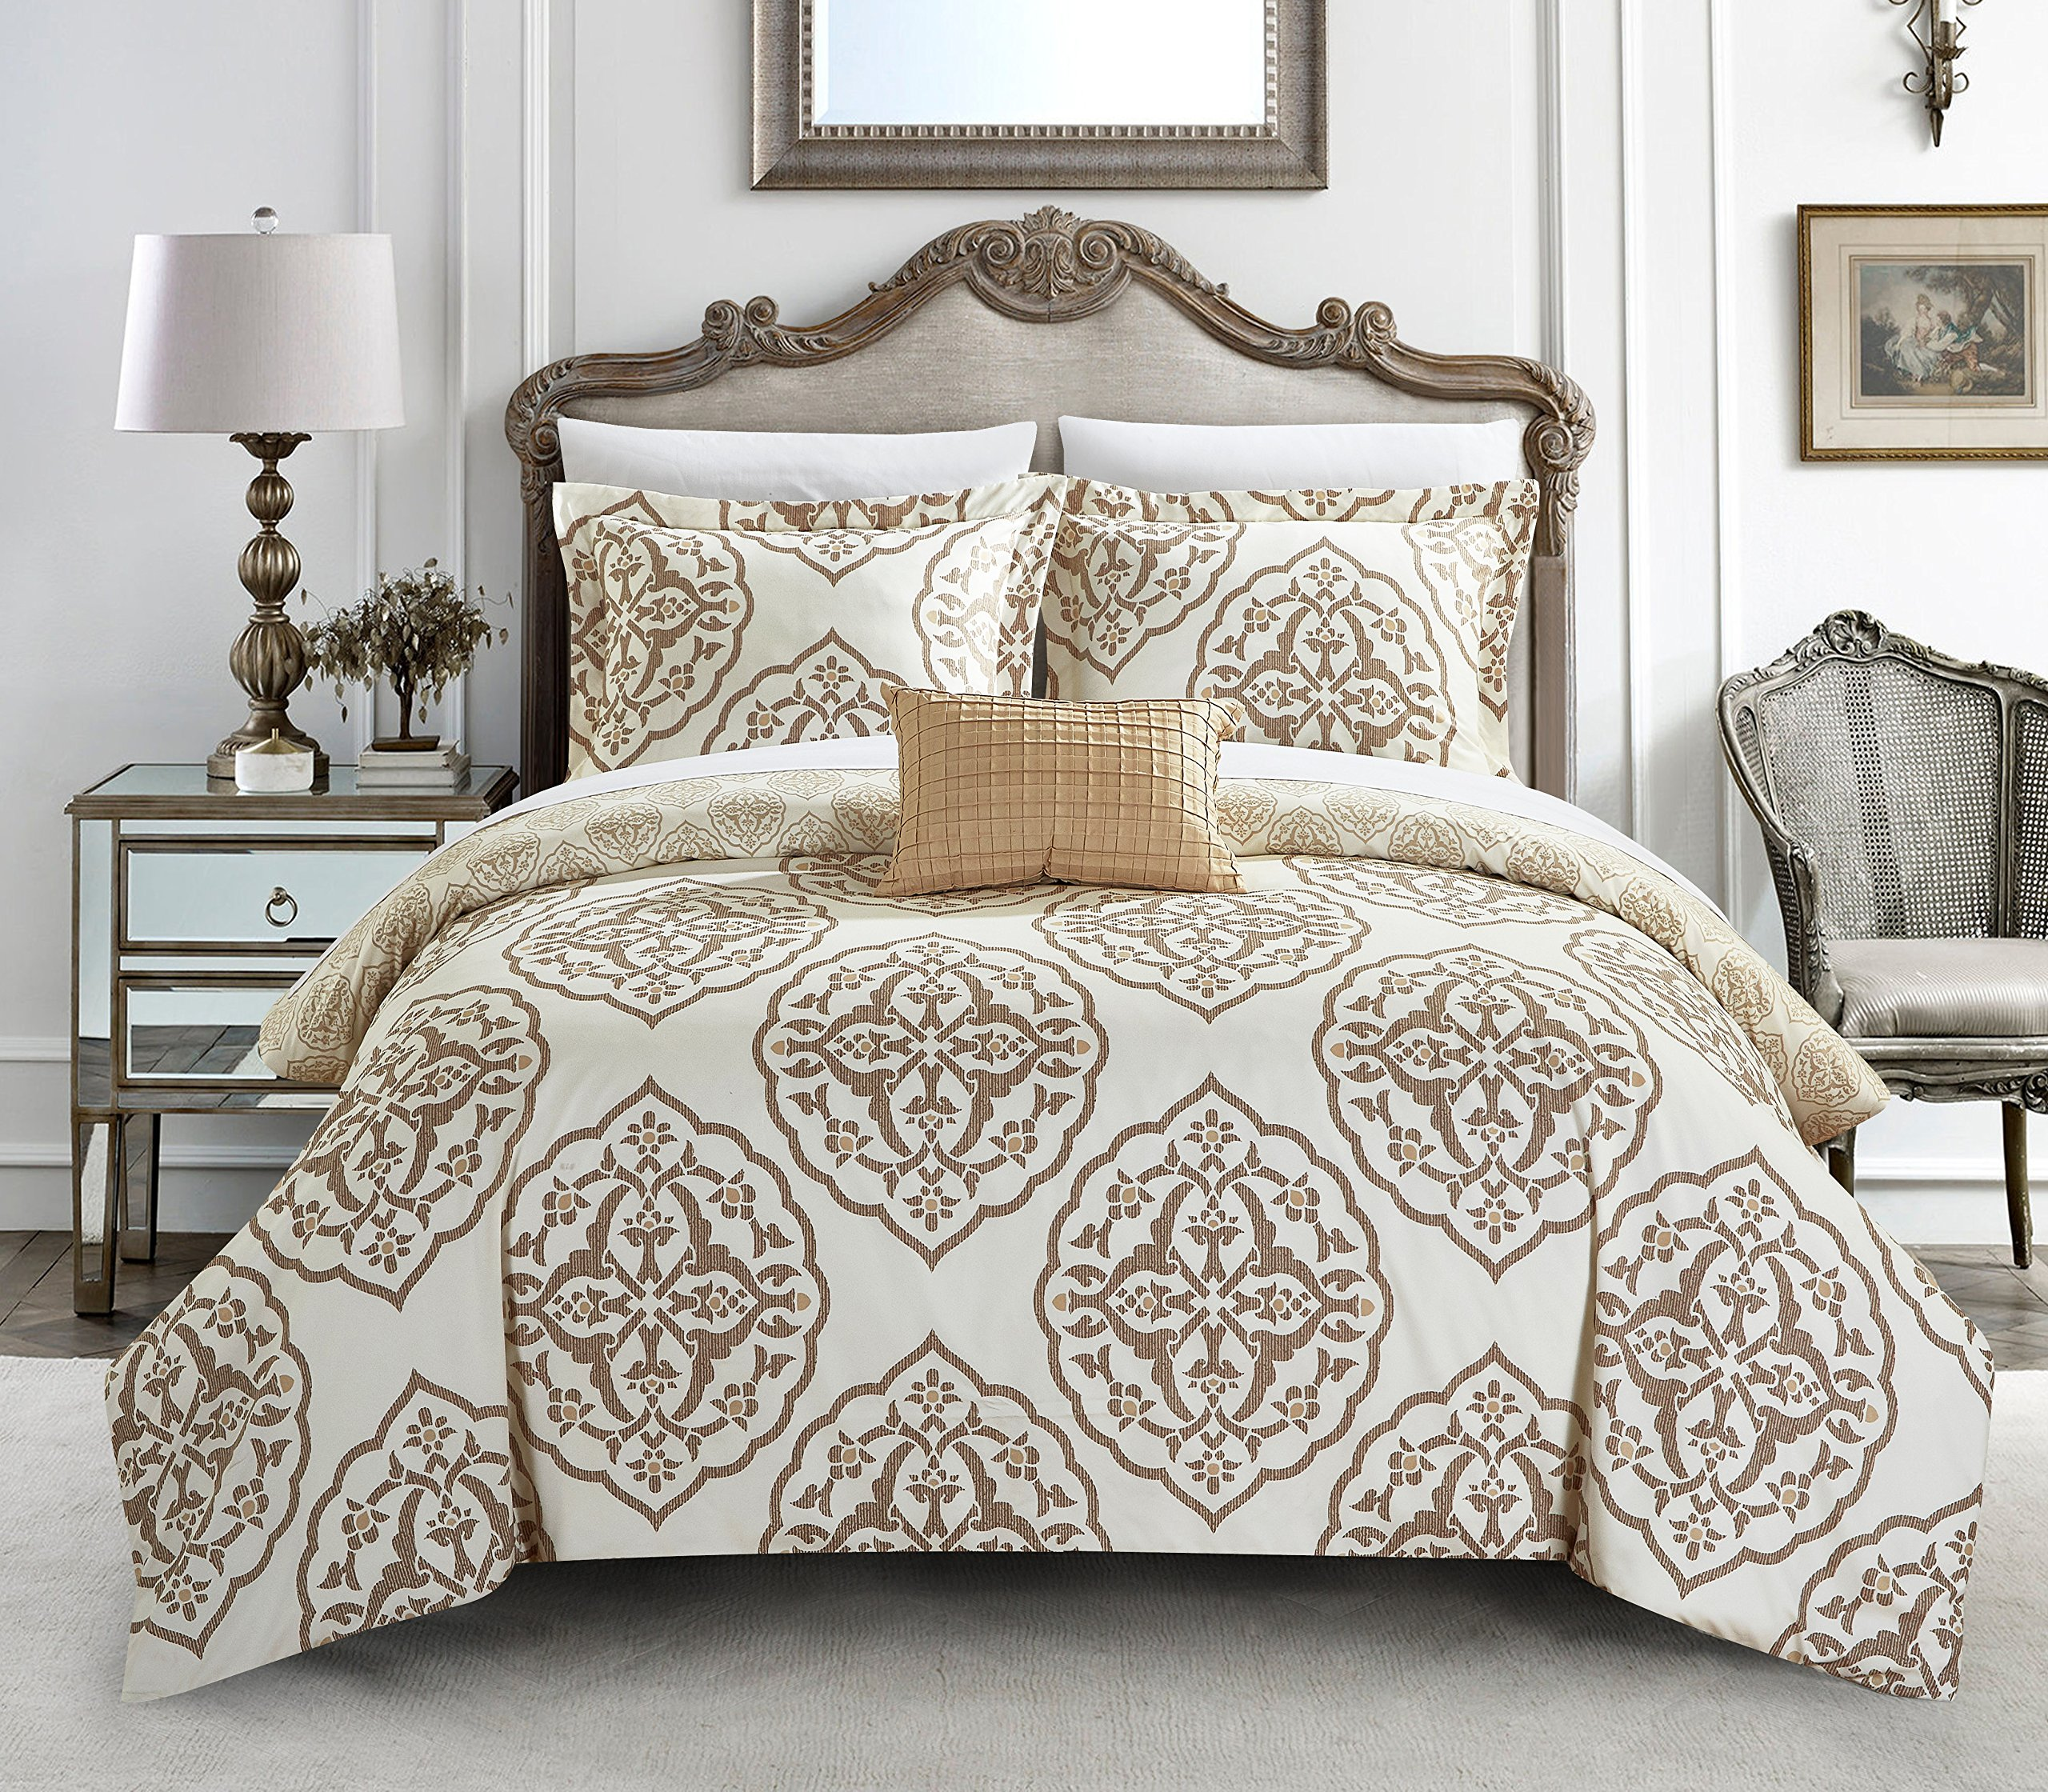 Chic Home 4 Piece Murano Reversible Two-Tone Medallion Pattern Print Queen Duvet Cover Set Beige